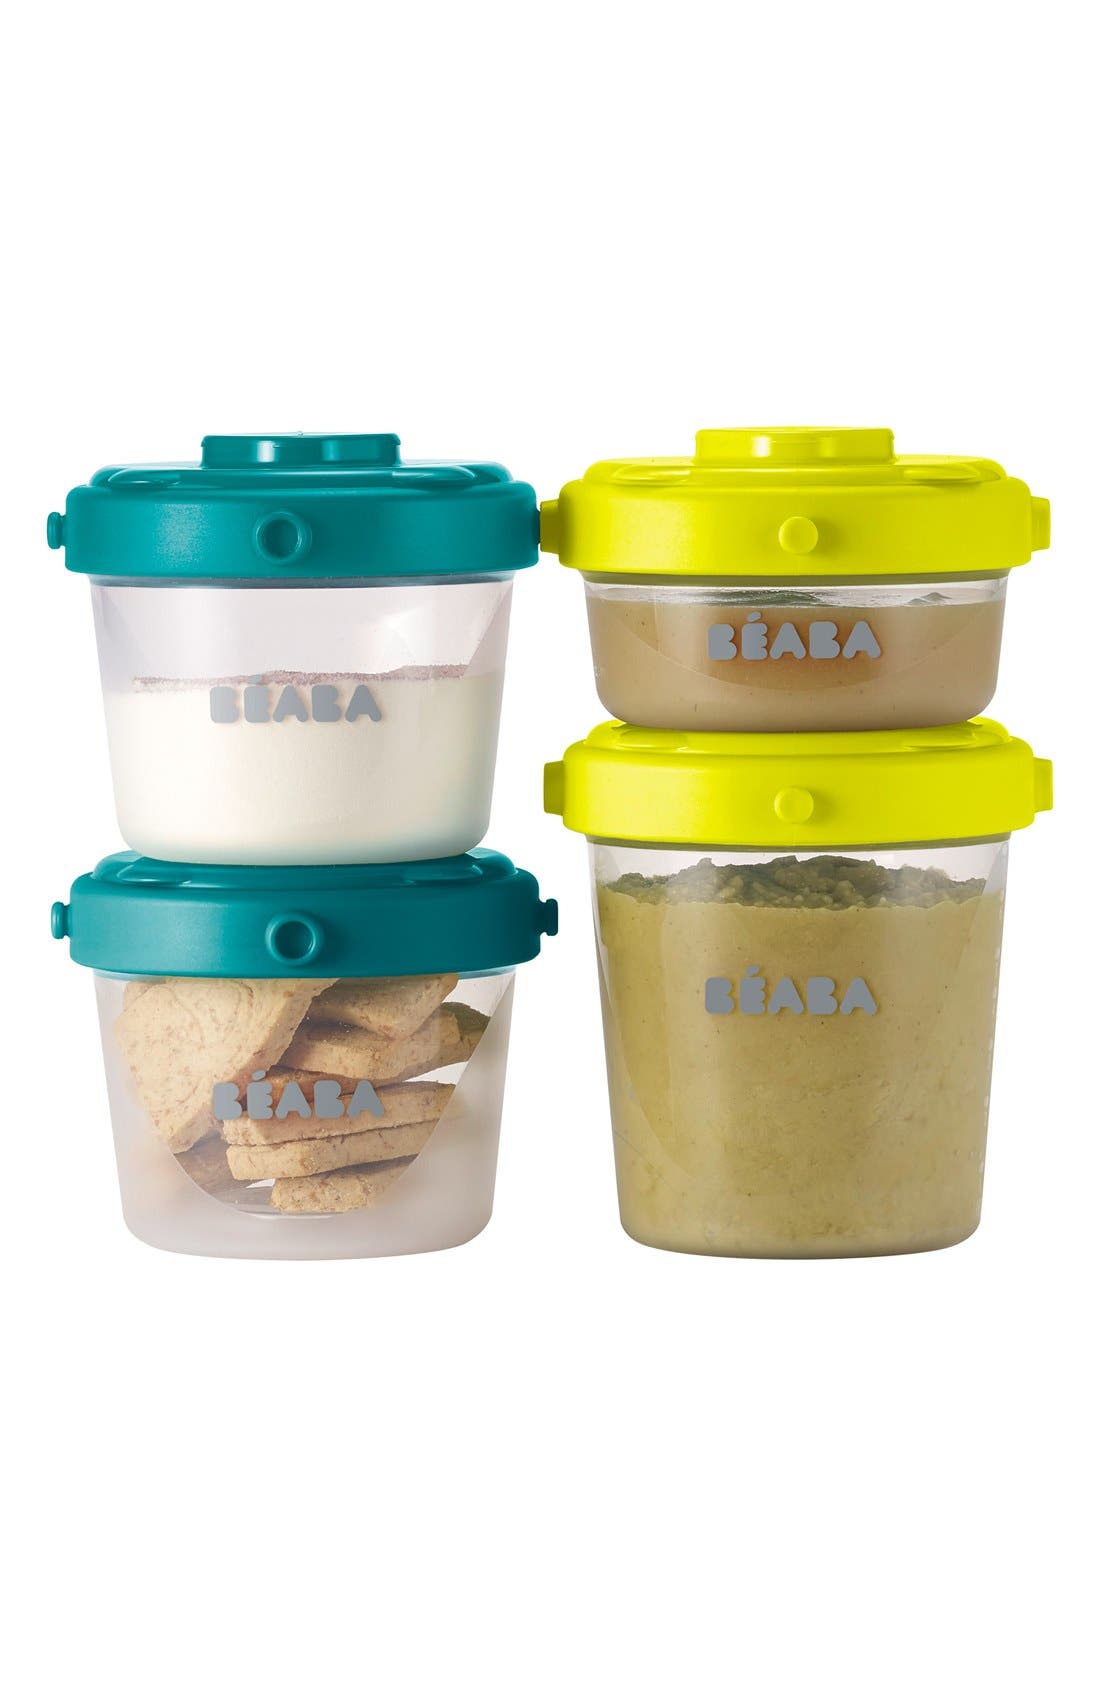 BÉABA, Clip Portion Containers, Alternate thumbnail 2, color, PEACOCK